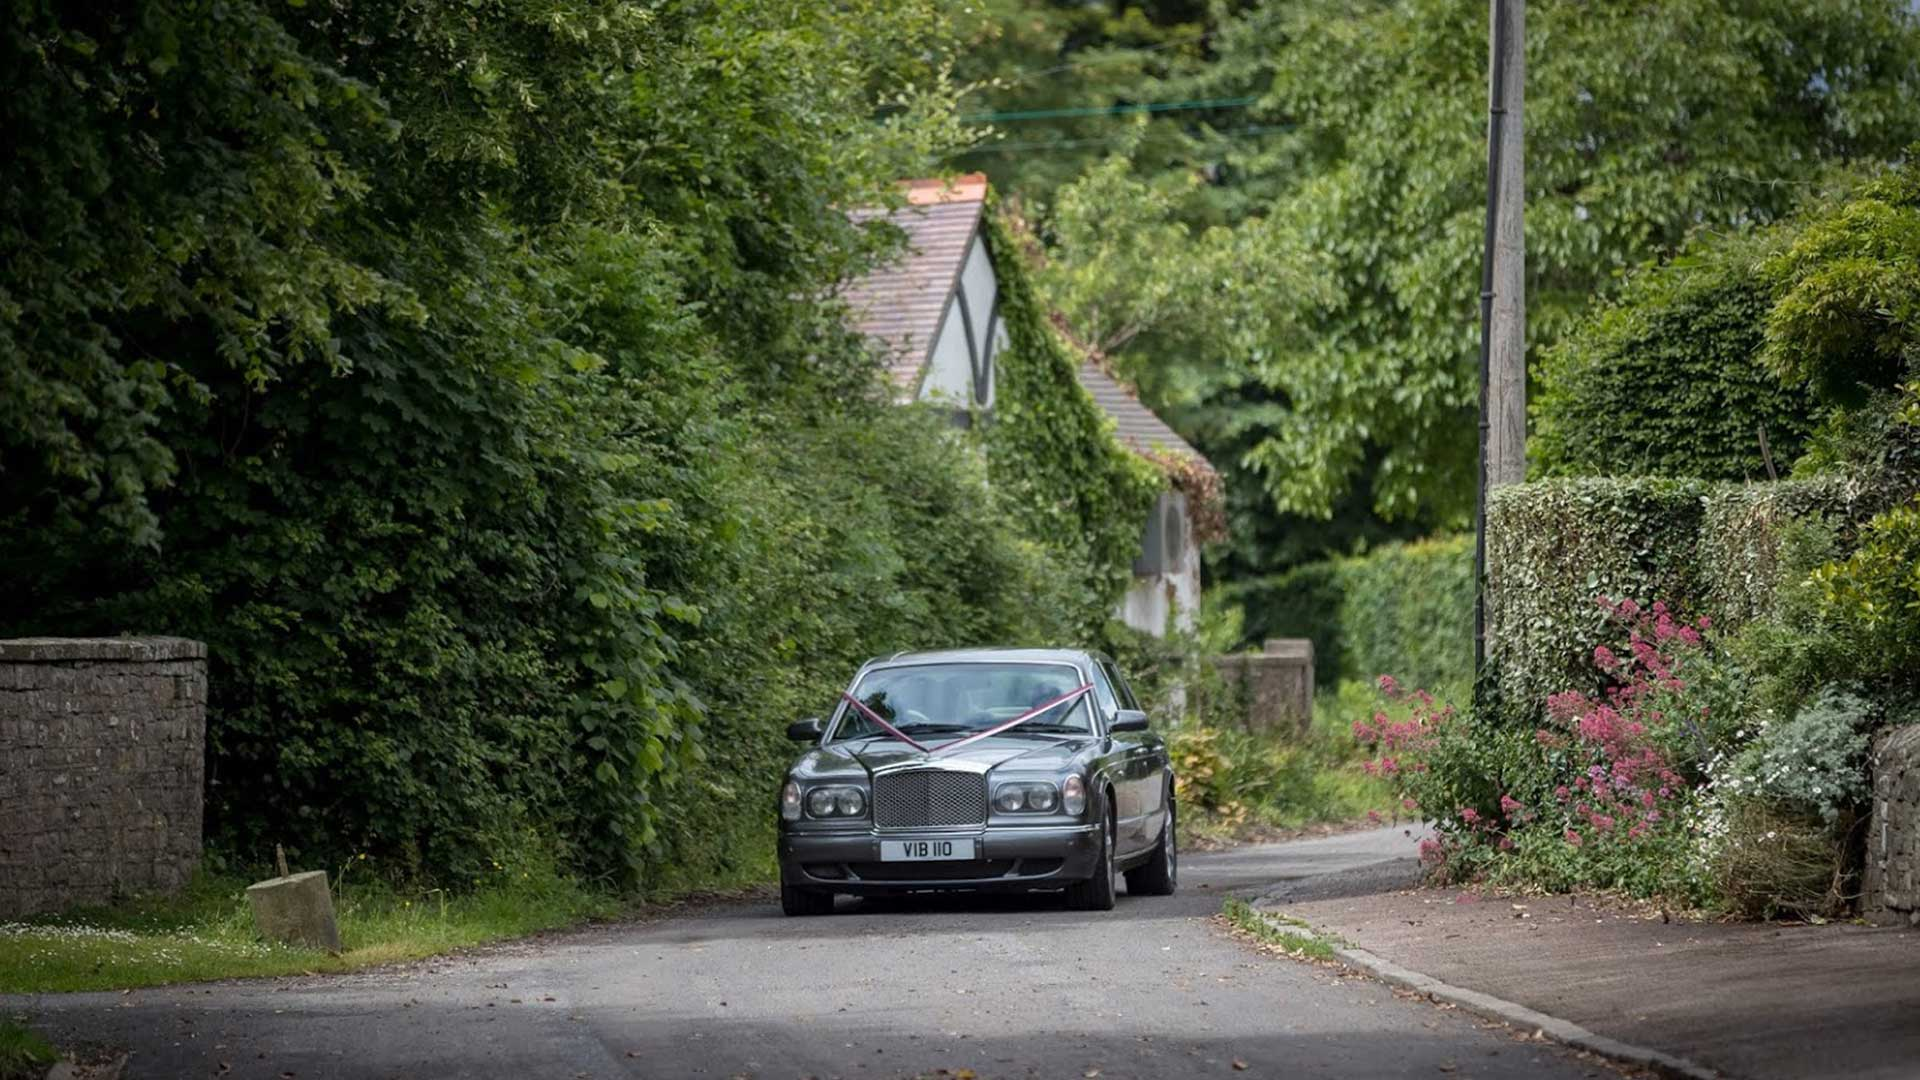 The Bentley Arnage wedding car